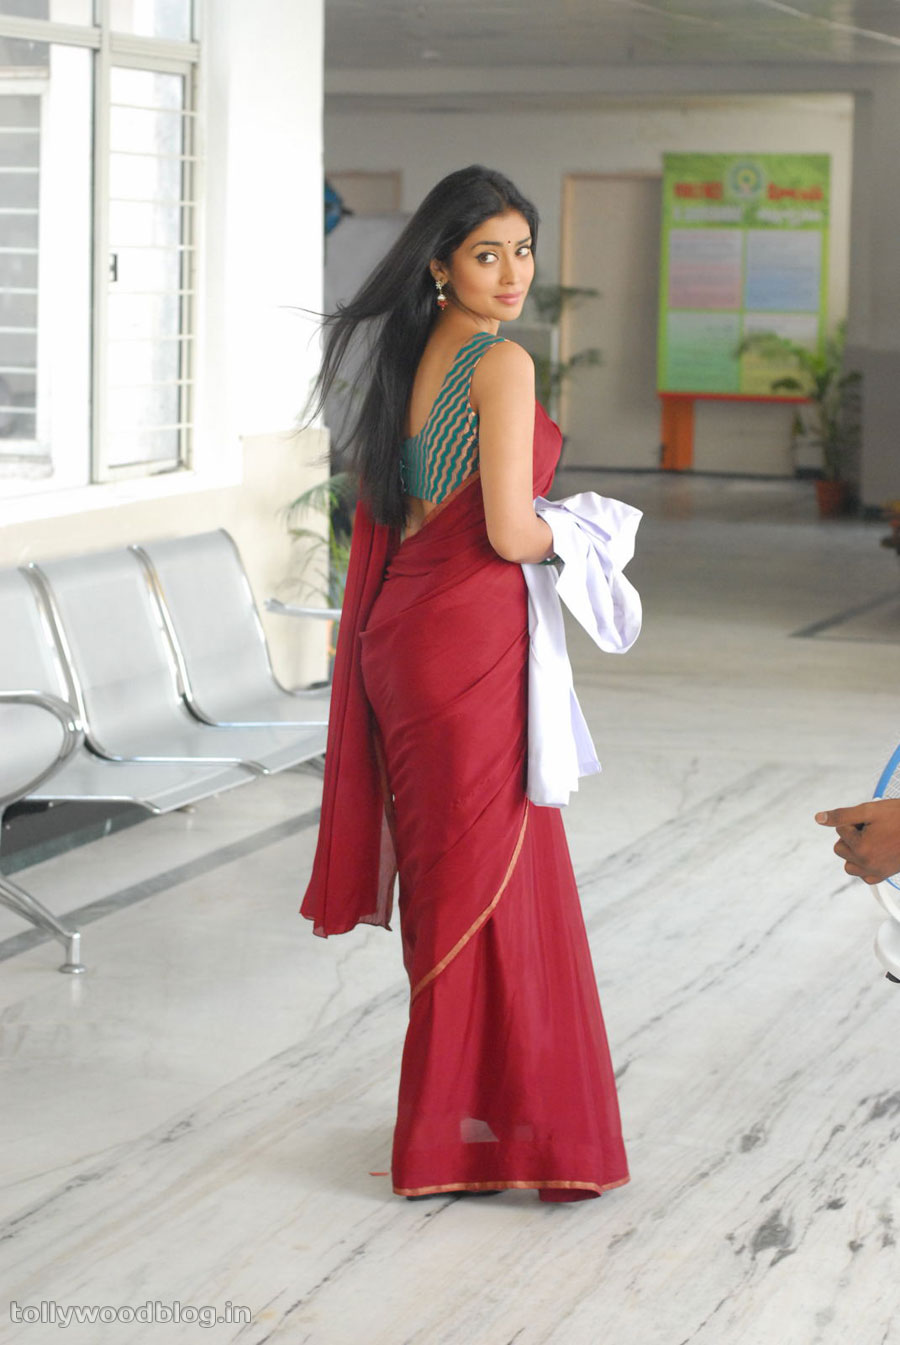 Shriya Saran in red saree as doctor - Shriya Saran Nuvva Nena movie Stills